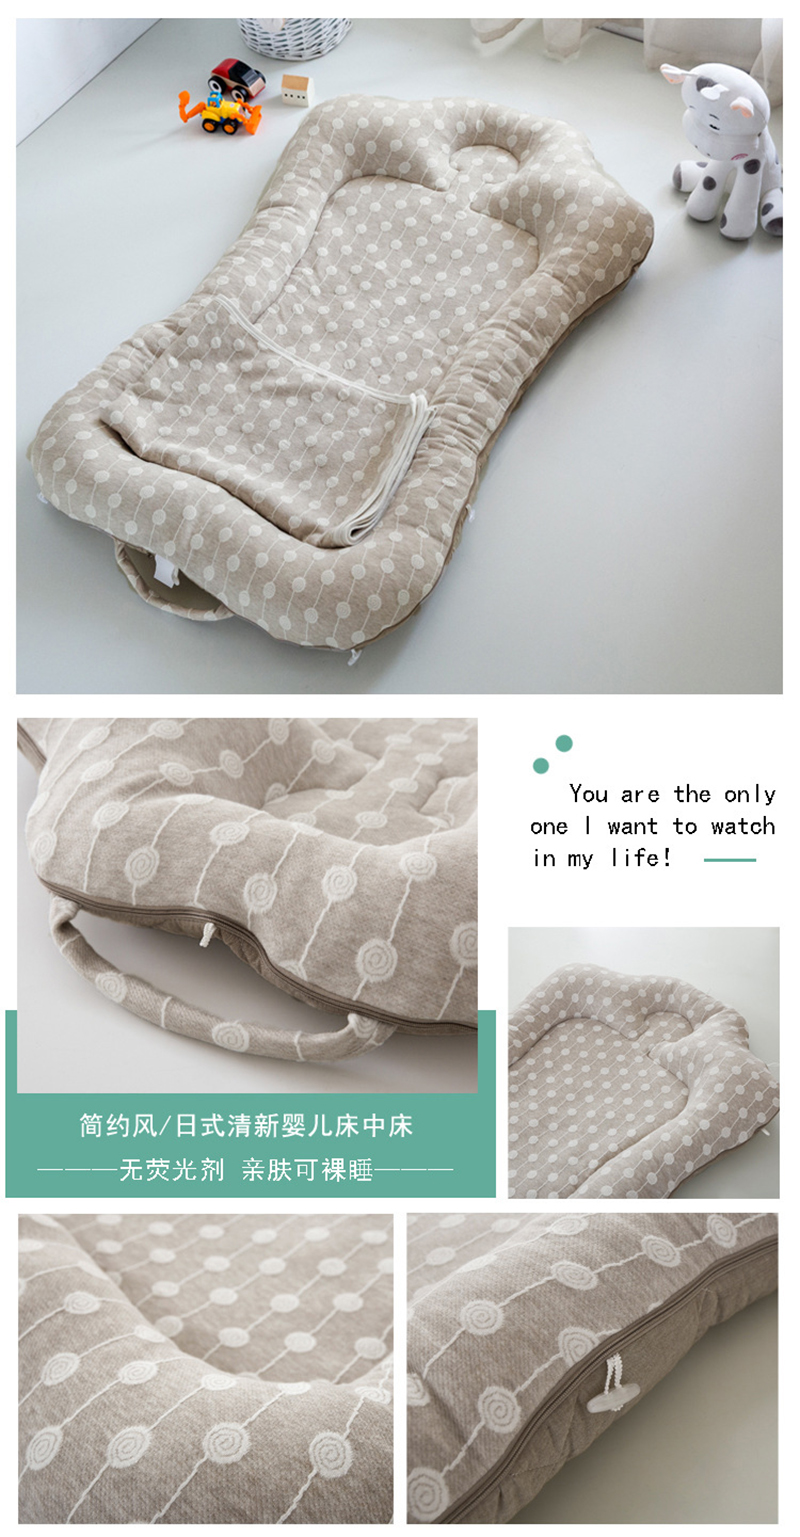 Portable Cotton Crib Fitted Sheet Soft Baby Bed Mattress Cover Protector Cartoon Newborn Bedding For Cot Size 60*110cm Baby Furniture Baby Cribs